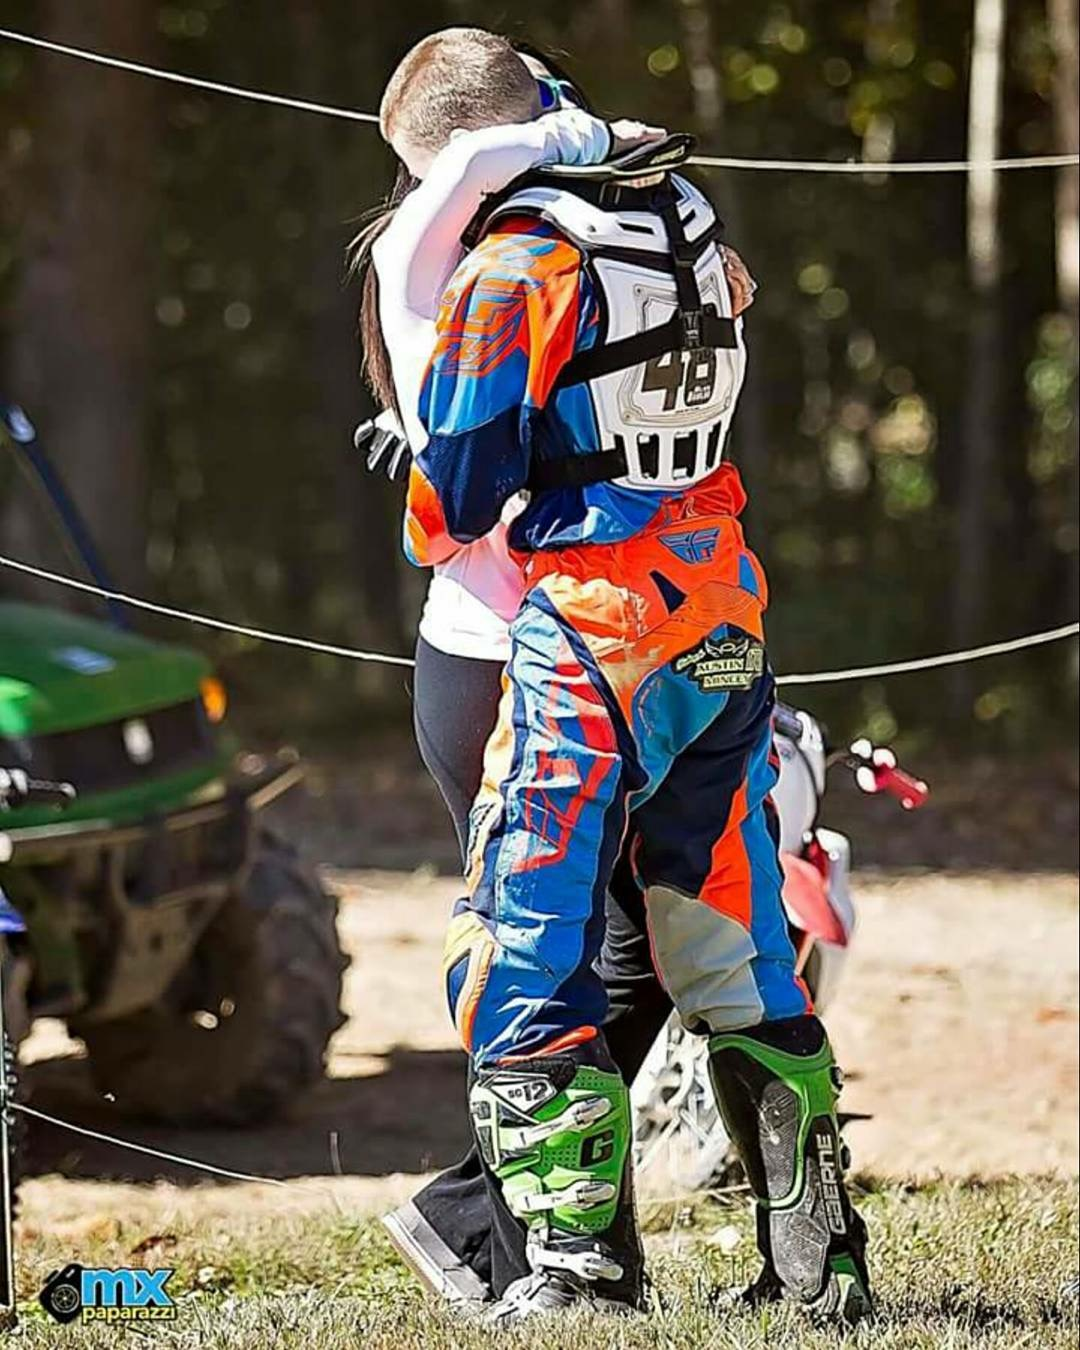 October 18, 2016 Alex proposed at Fast Farms MX